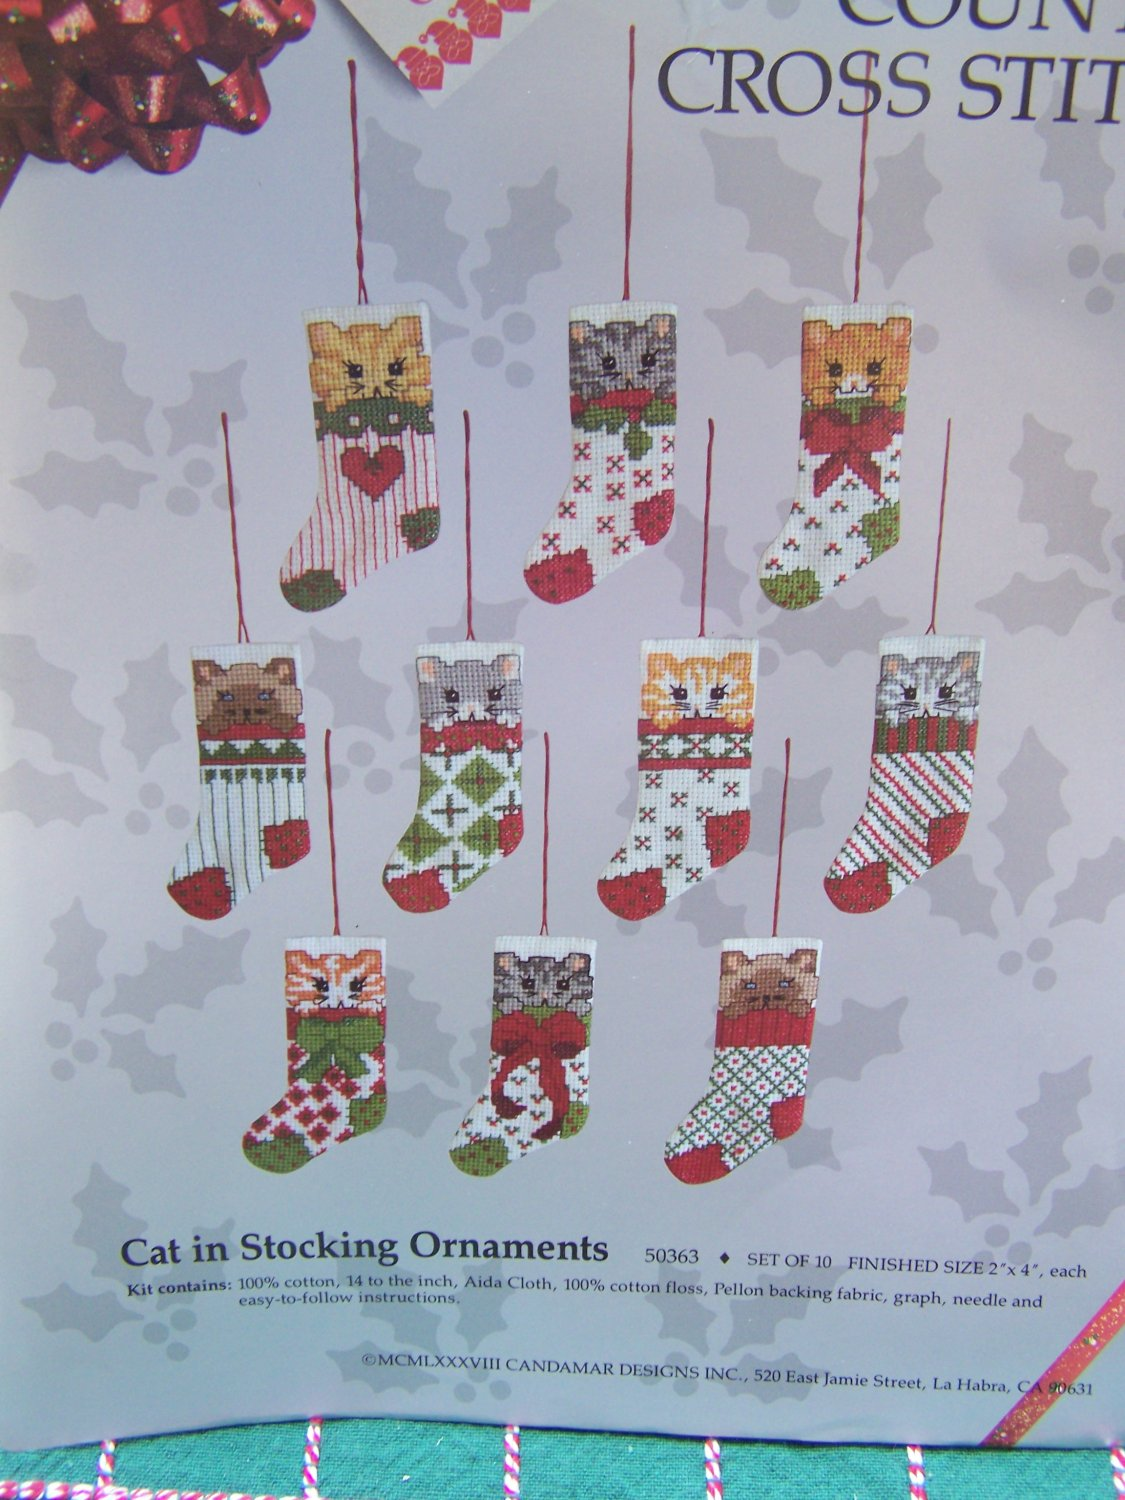 10 Cat Christmas Stocking Ornaments Patterns Candamar Counted Cross Stitch Embroidery